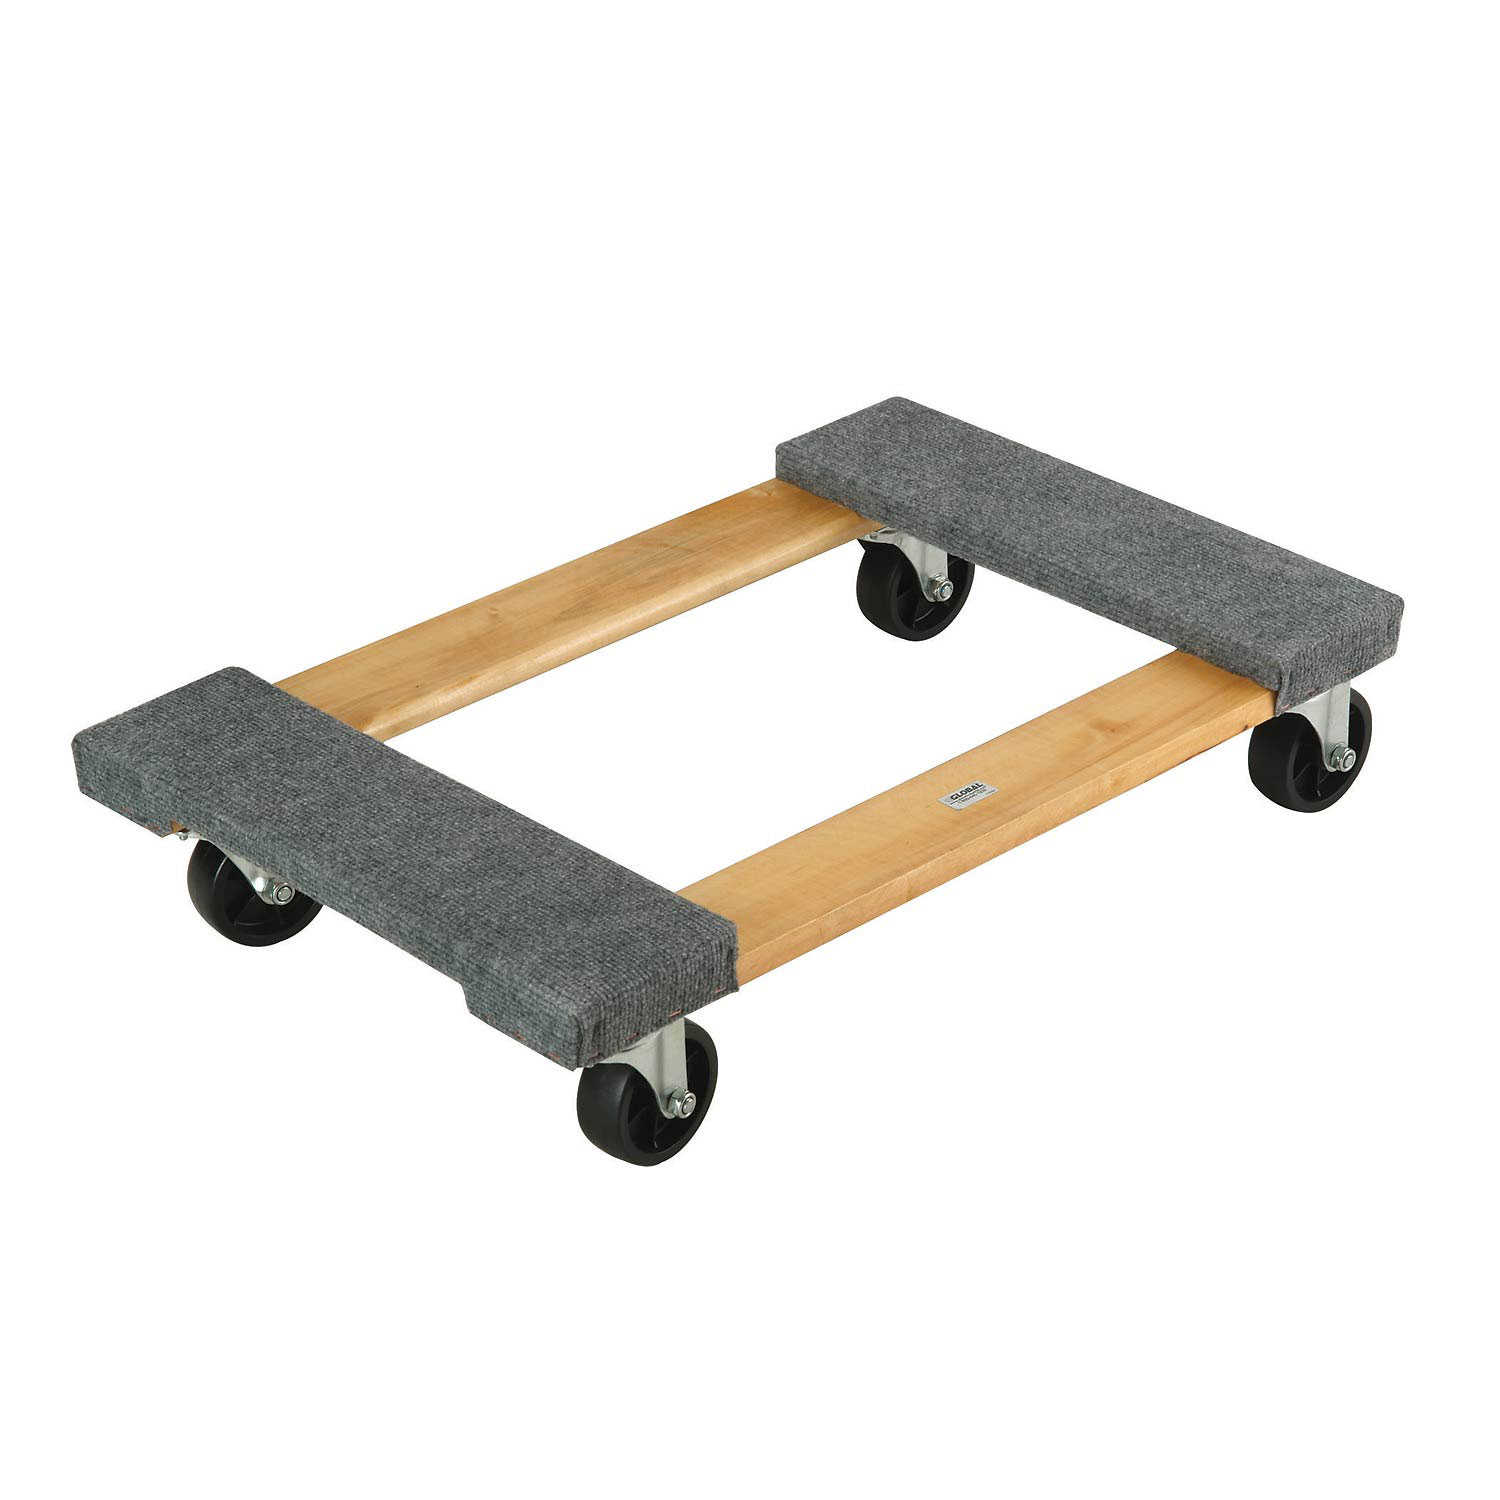 Hardwood Dolly - Carpeted Deck Ends, 30 x 18, 1200 Lb. Capacity, Lot of 1